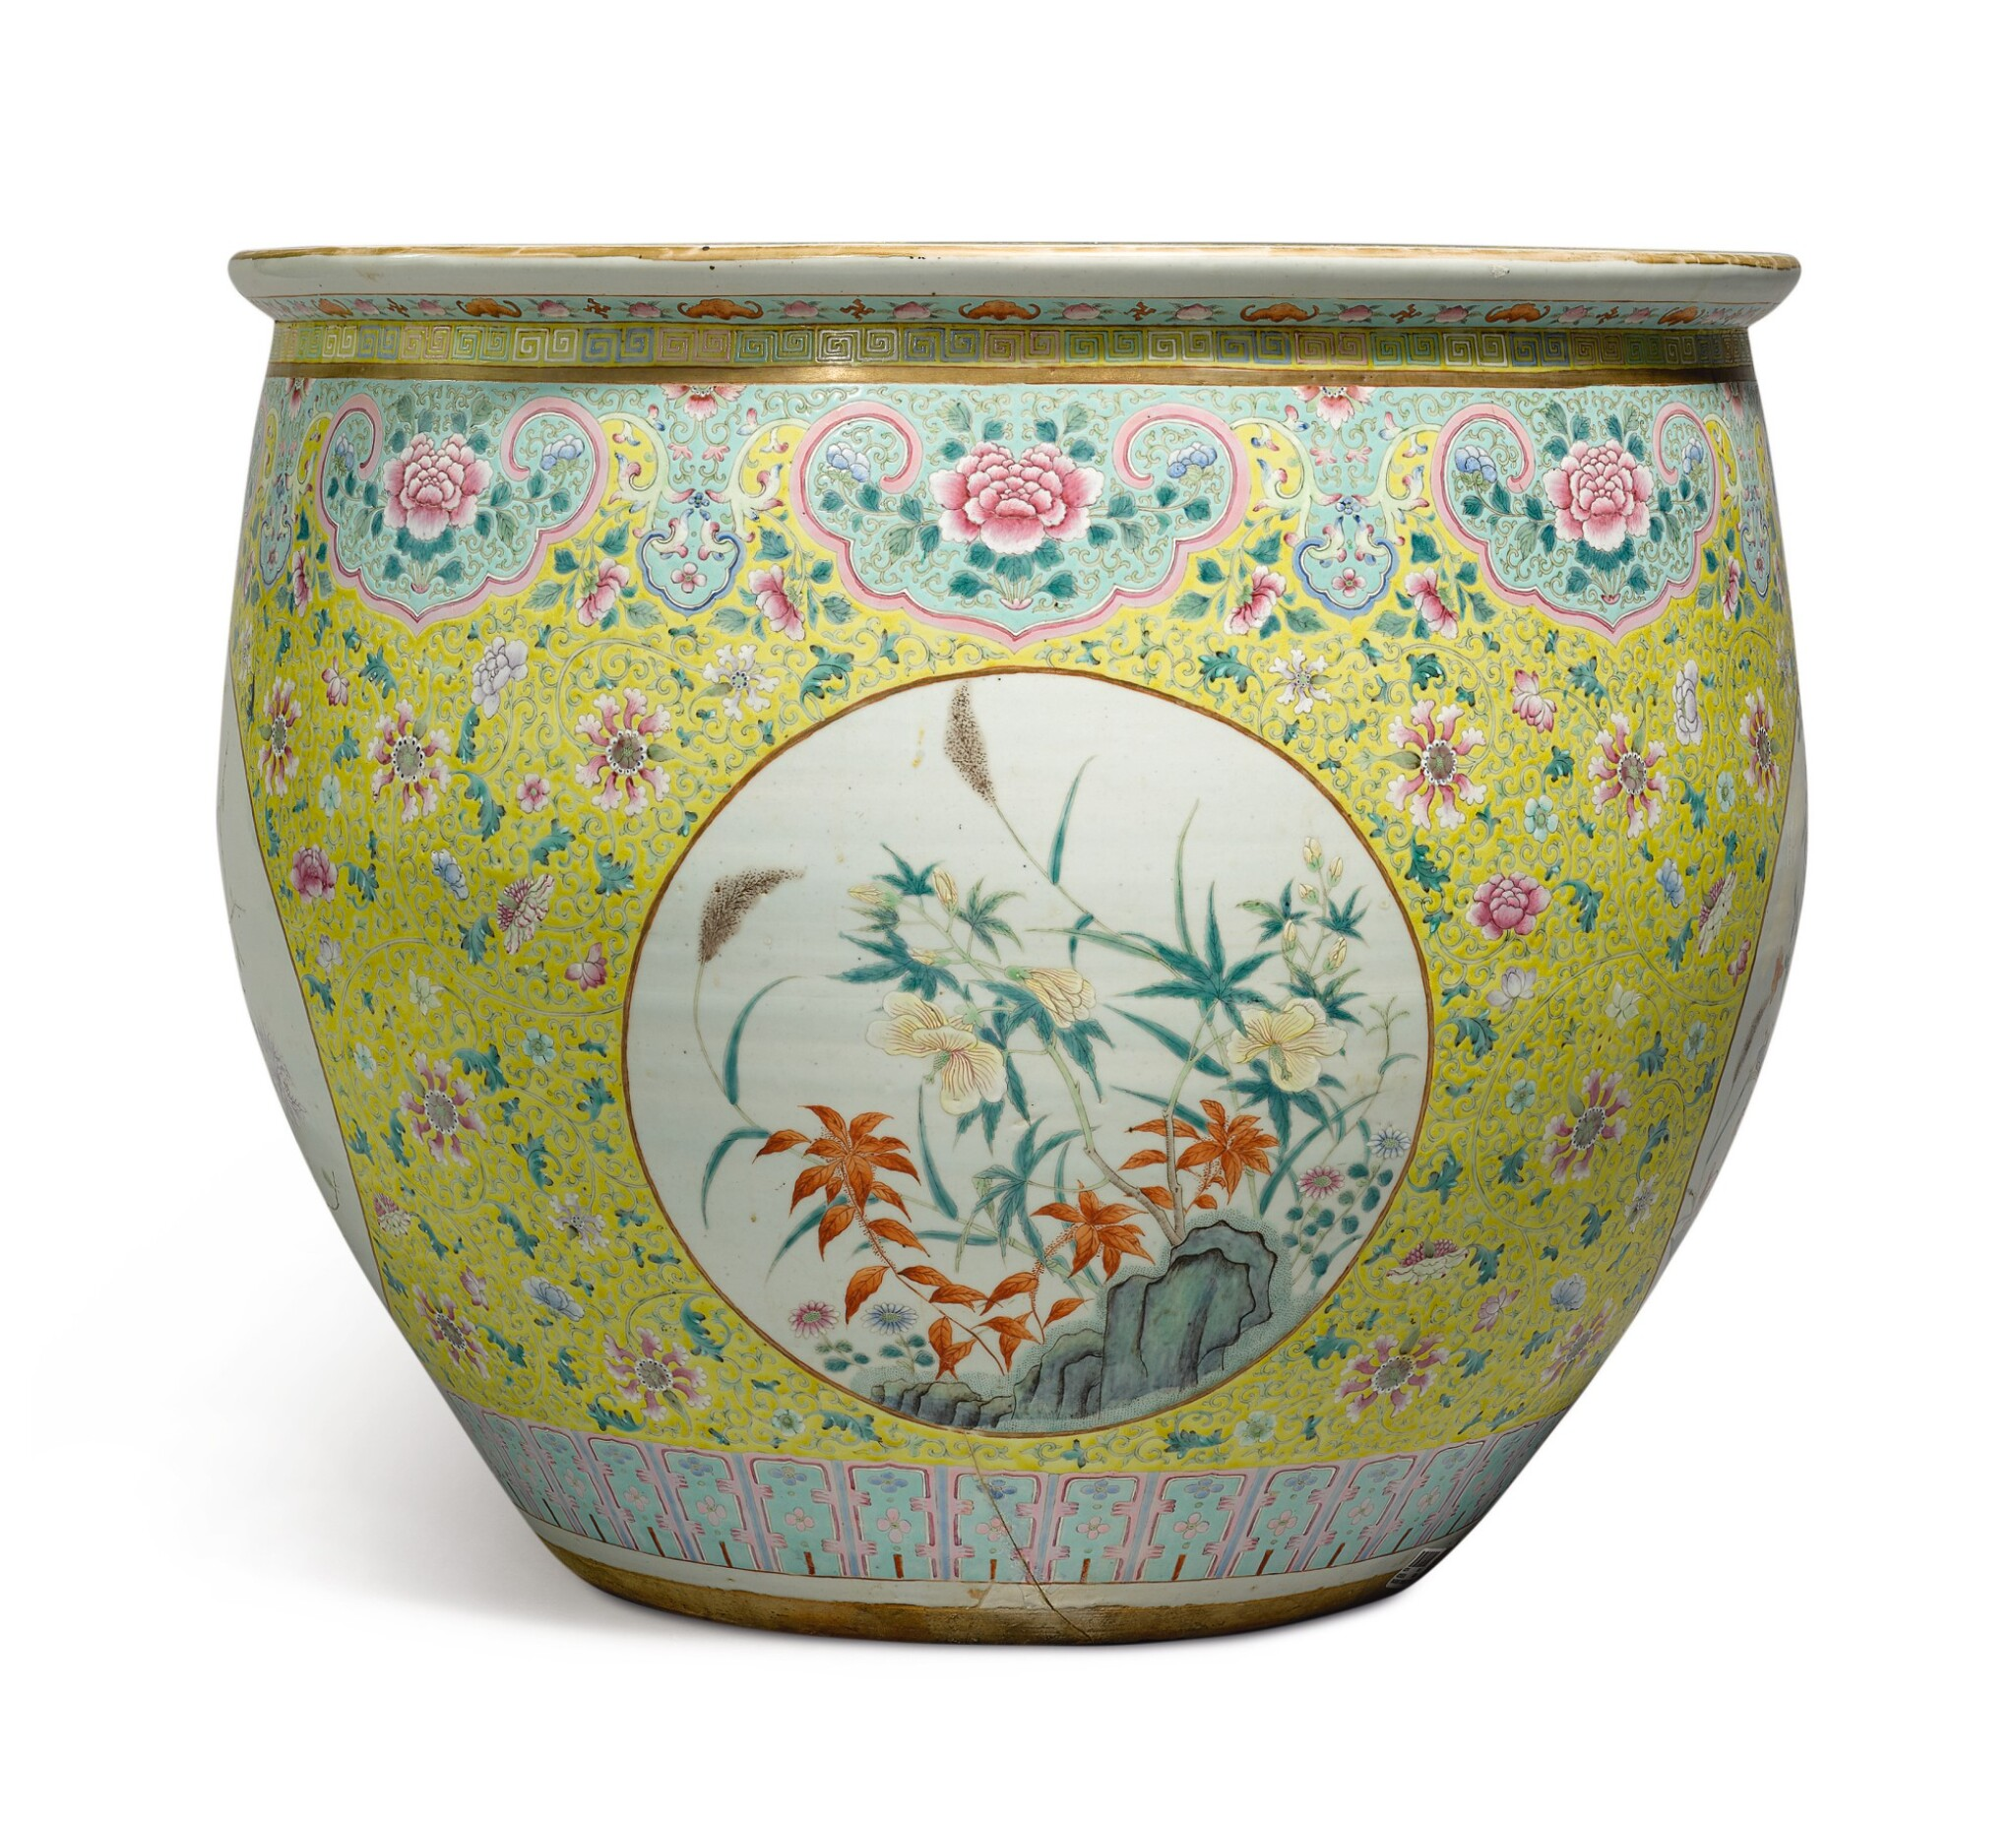 View 1 of Lot 1156. A VERY LARGE YELLOW-GROUND FAMILLE-ROSE FISHBOWL, 19TH / 20TH CENTURY.